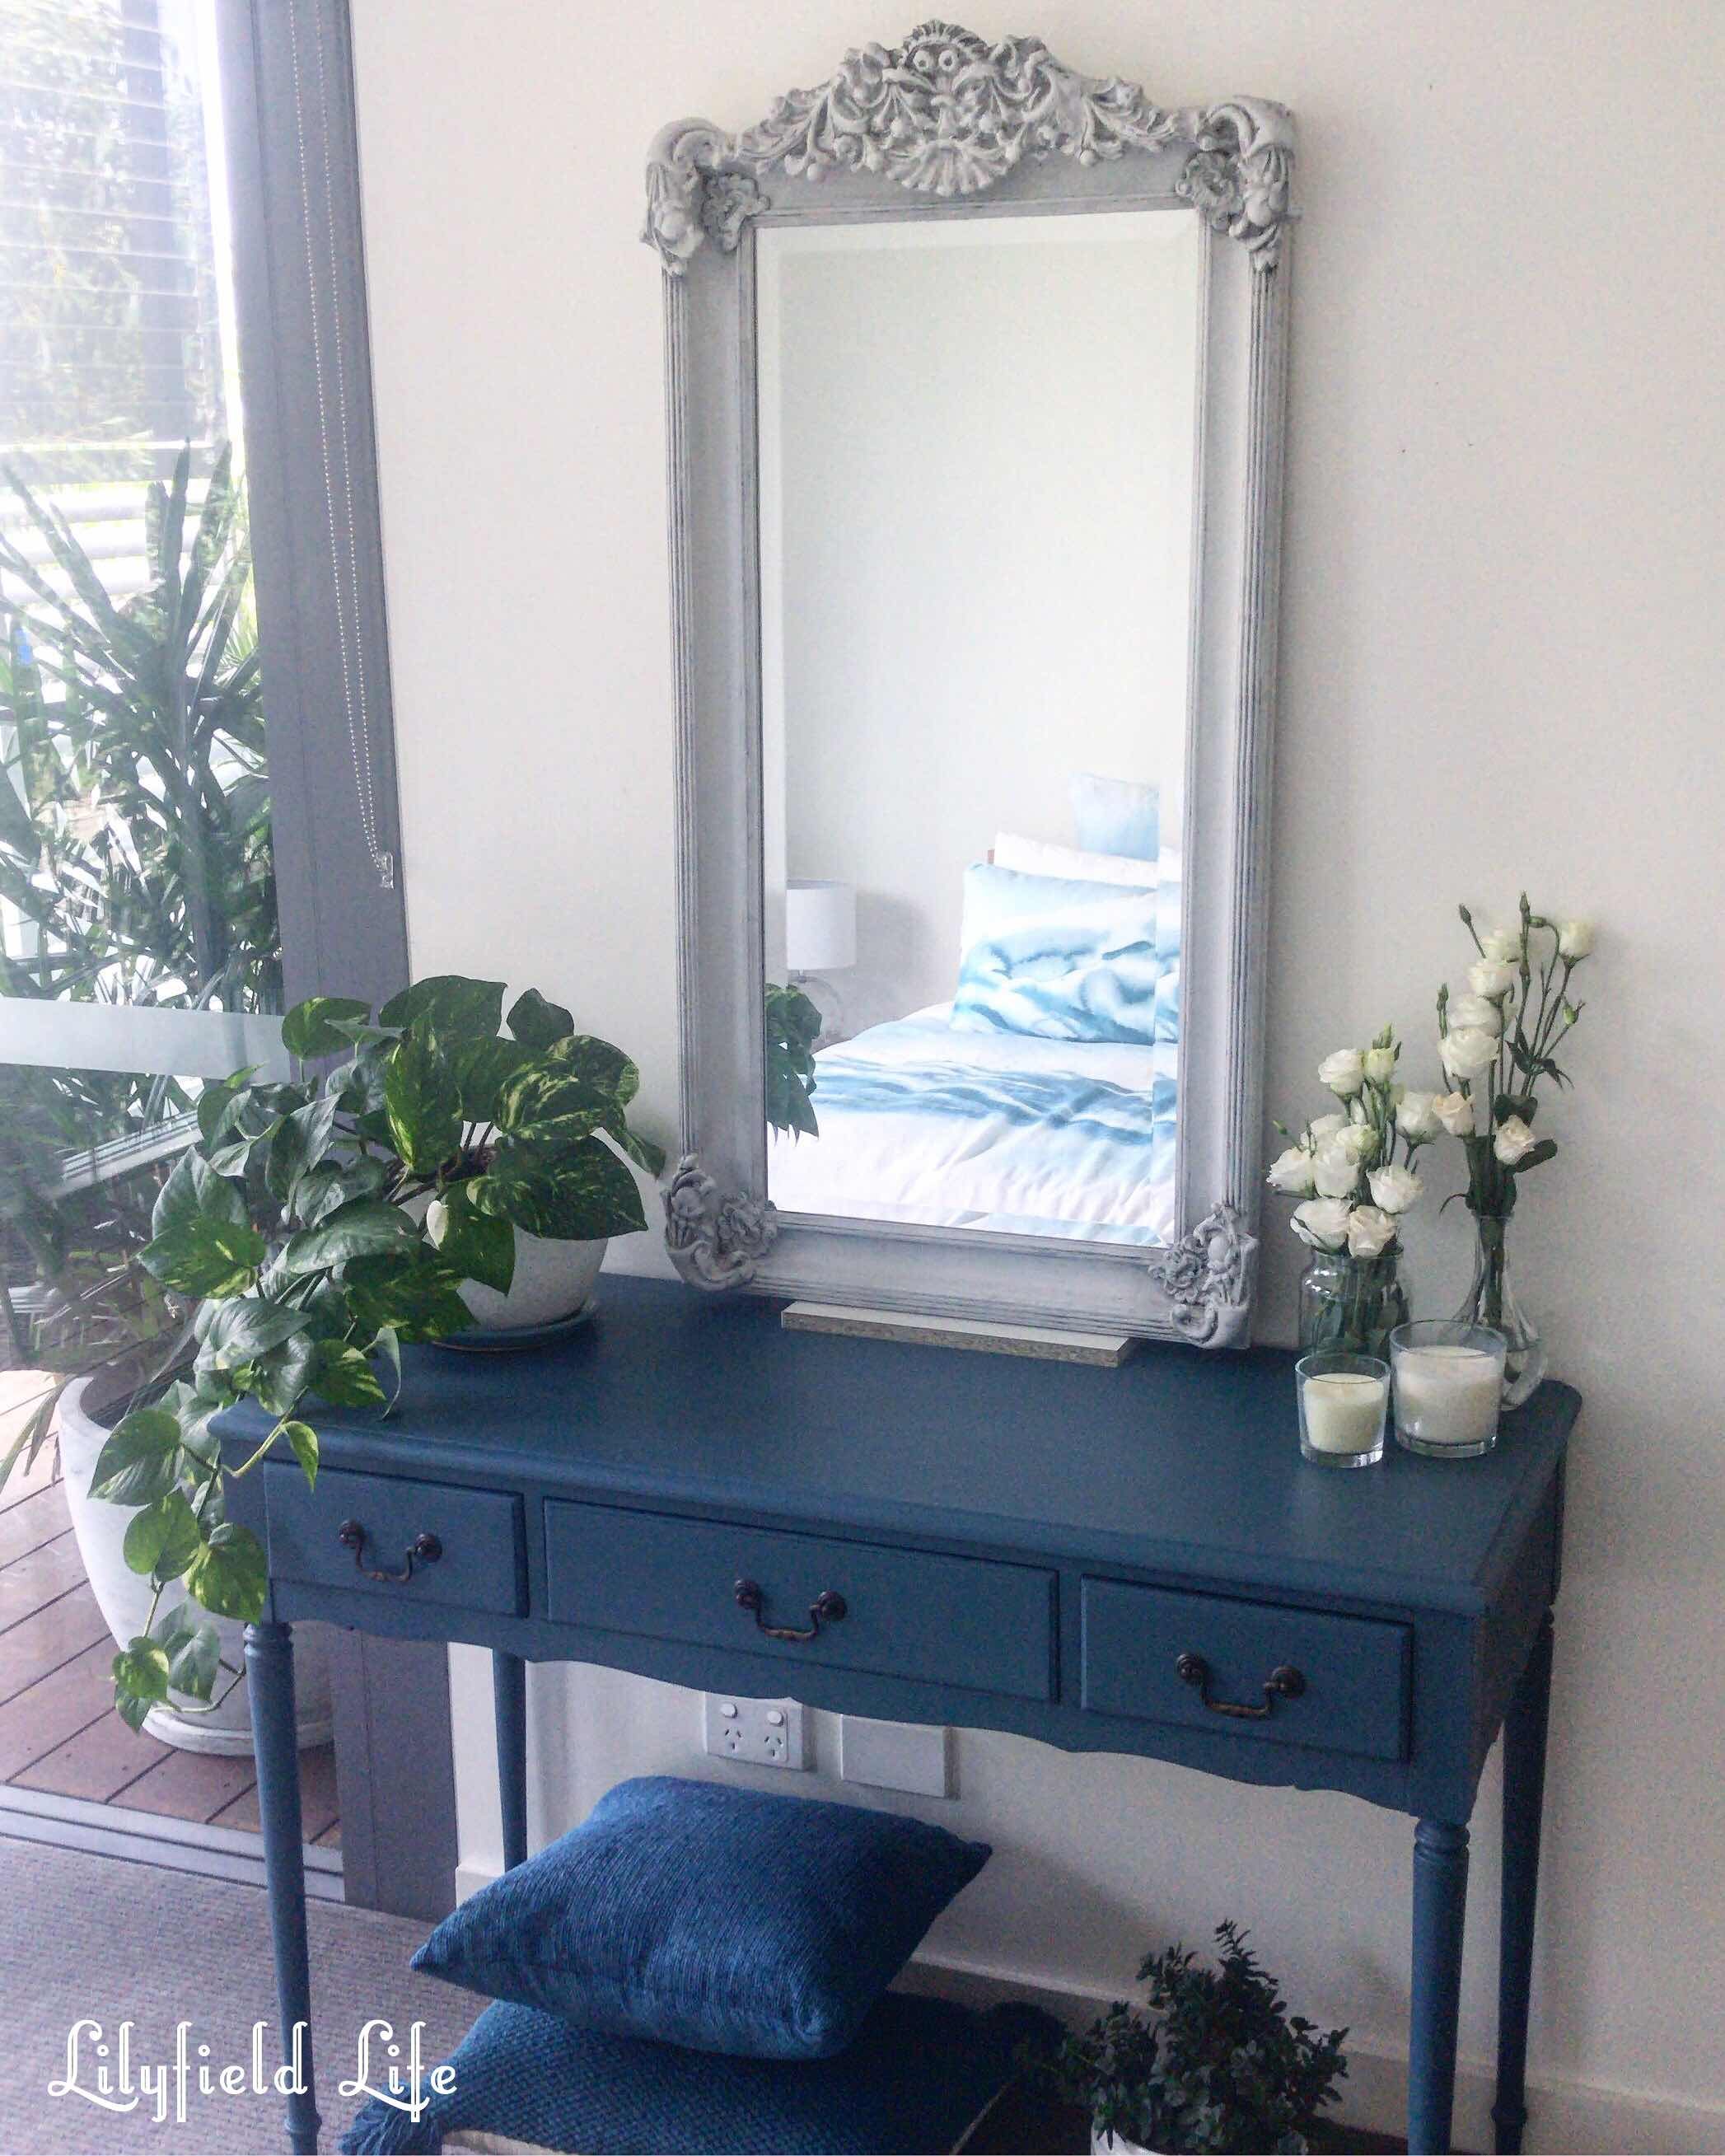 teal blue console table Lilyfield life